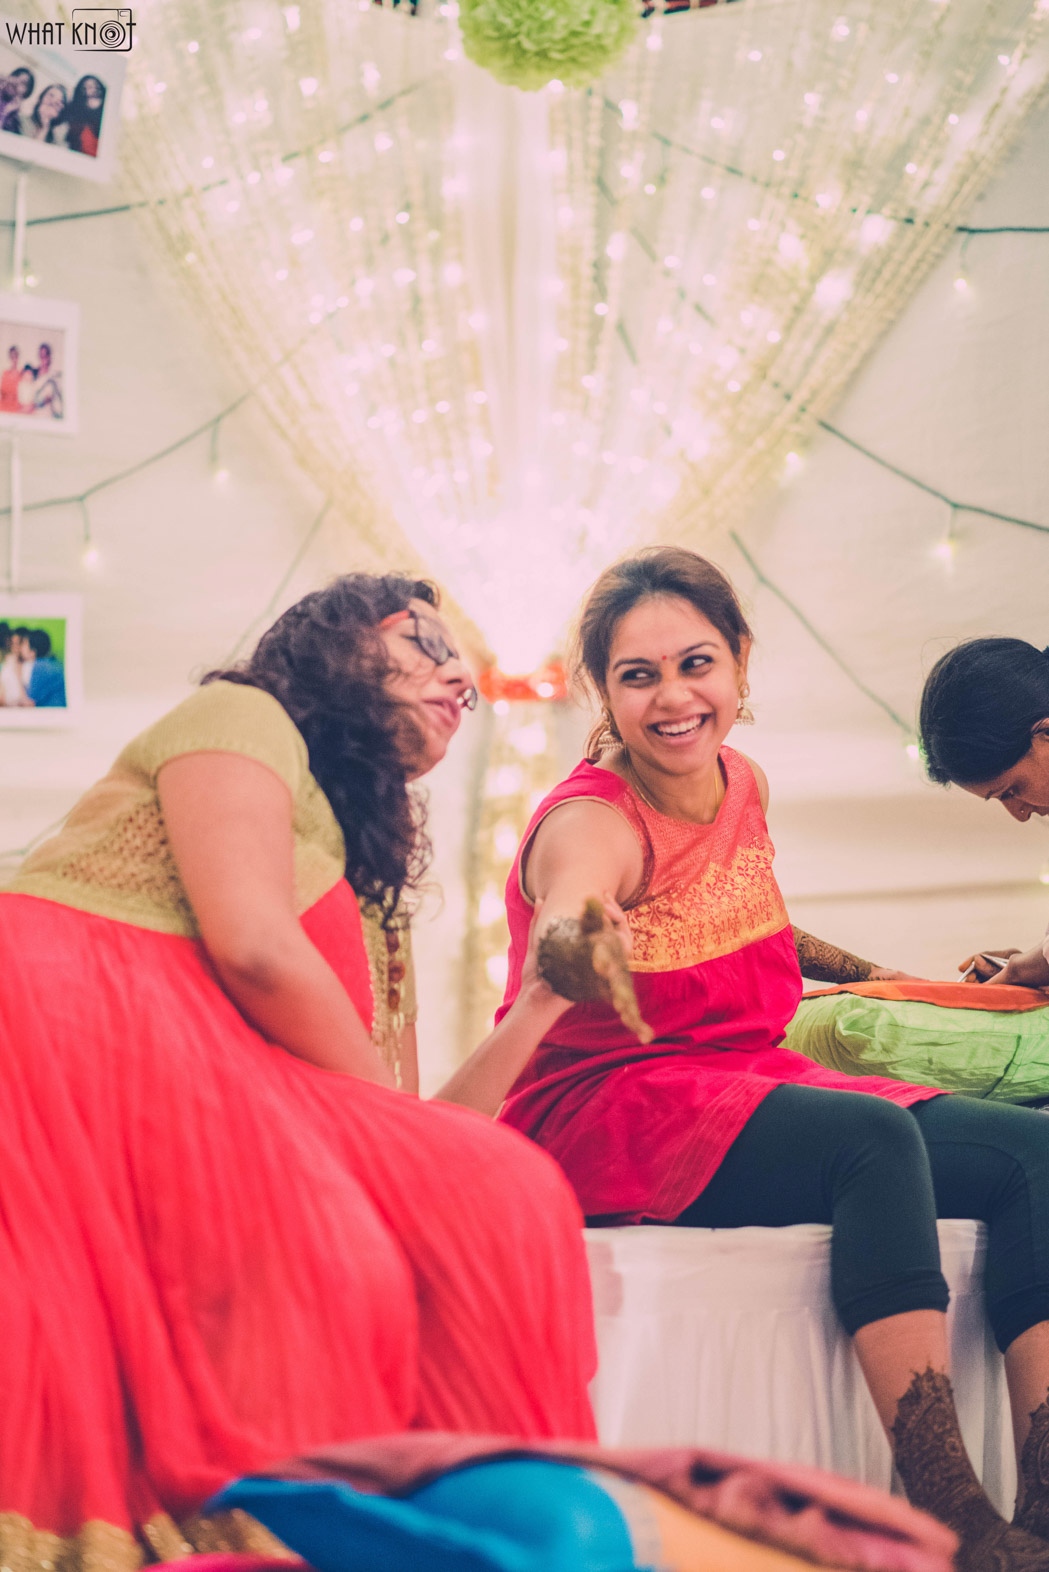 Candid-Wedding-Photography-WhatKnot-Marathi-59